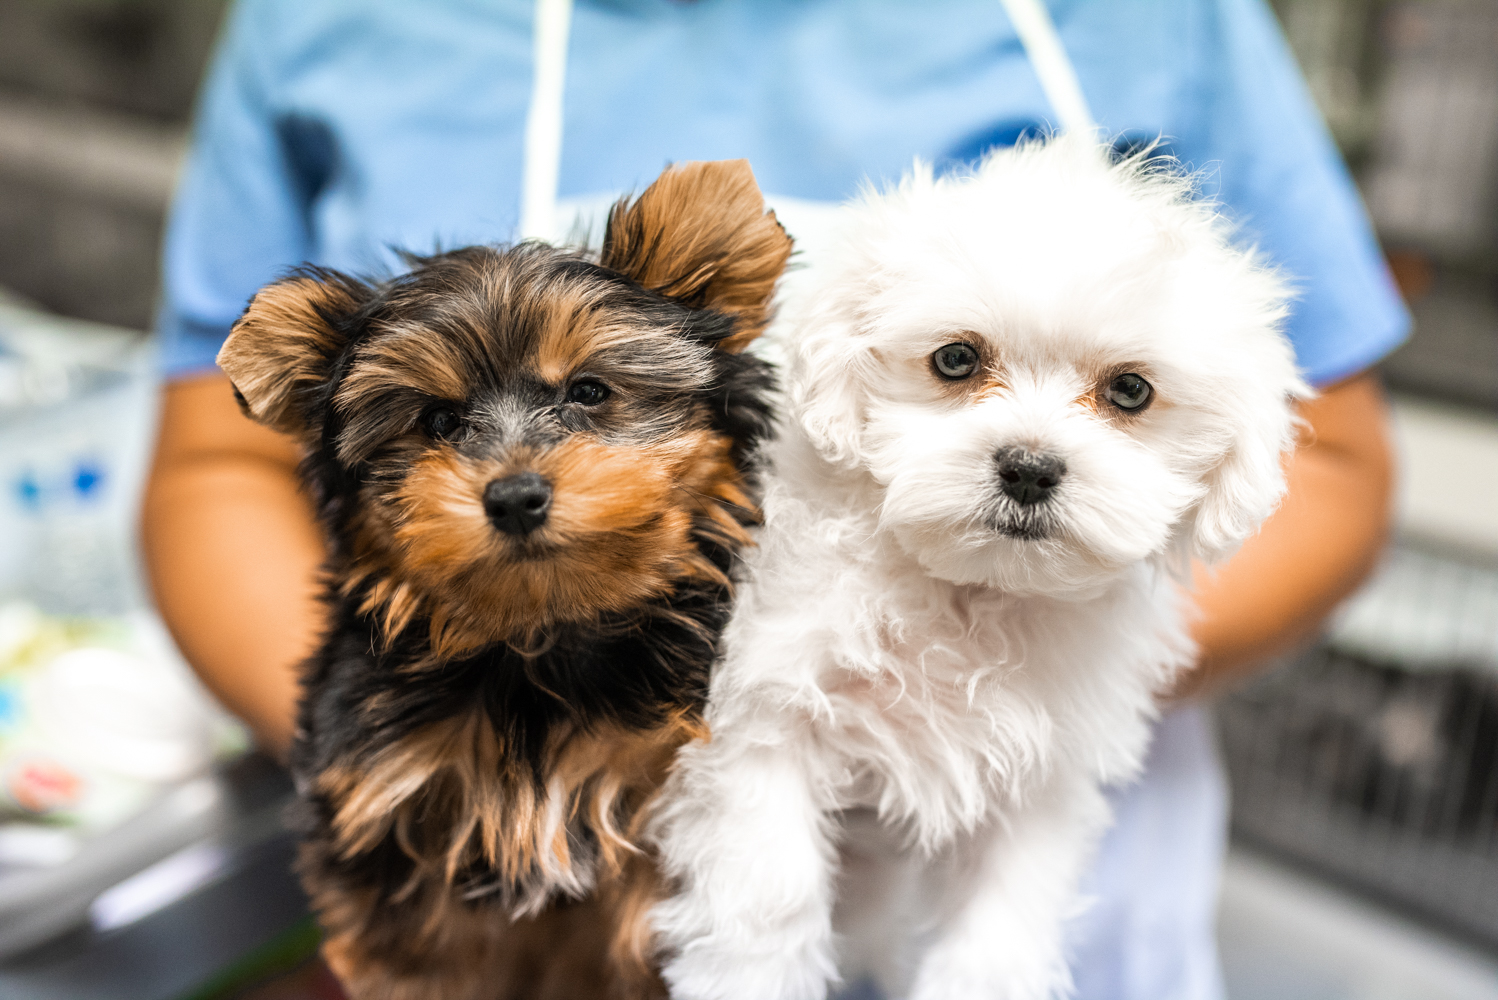 Puppy Boutique Las Vegas reviews | Consumer Services at 4343 N Rancho Dr - Las Vegas NV